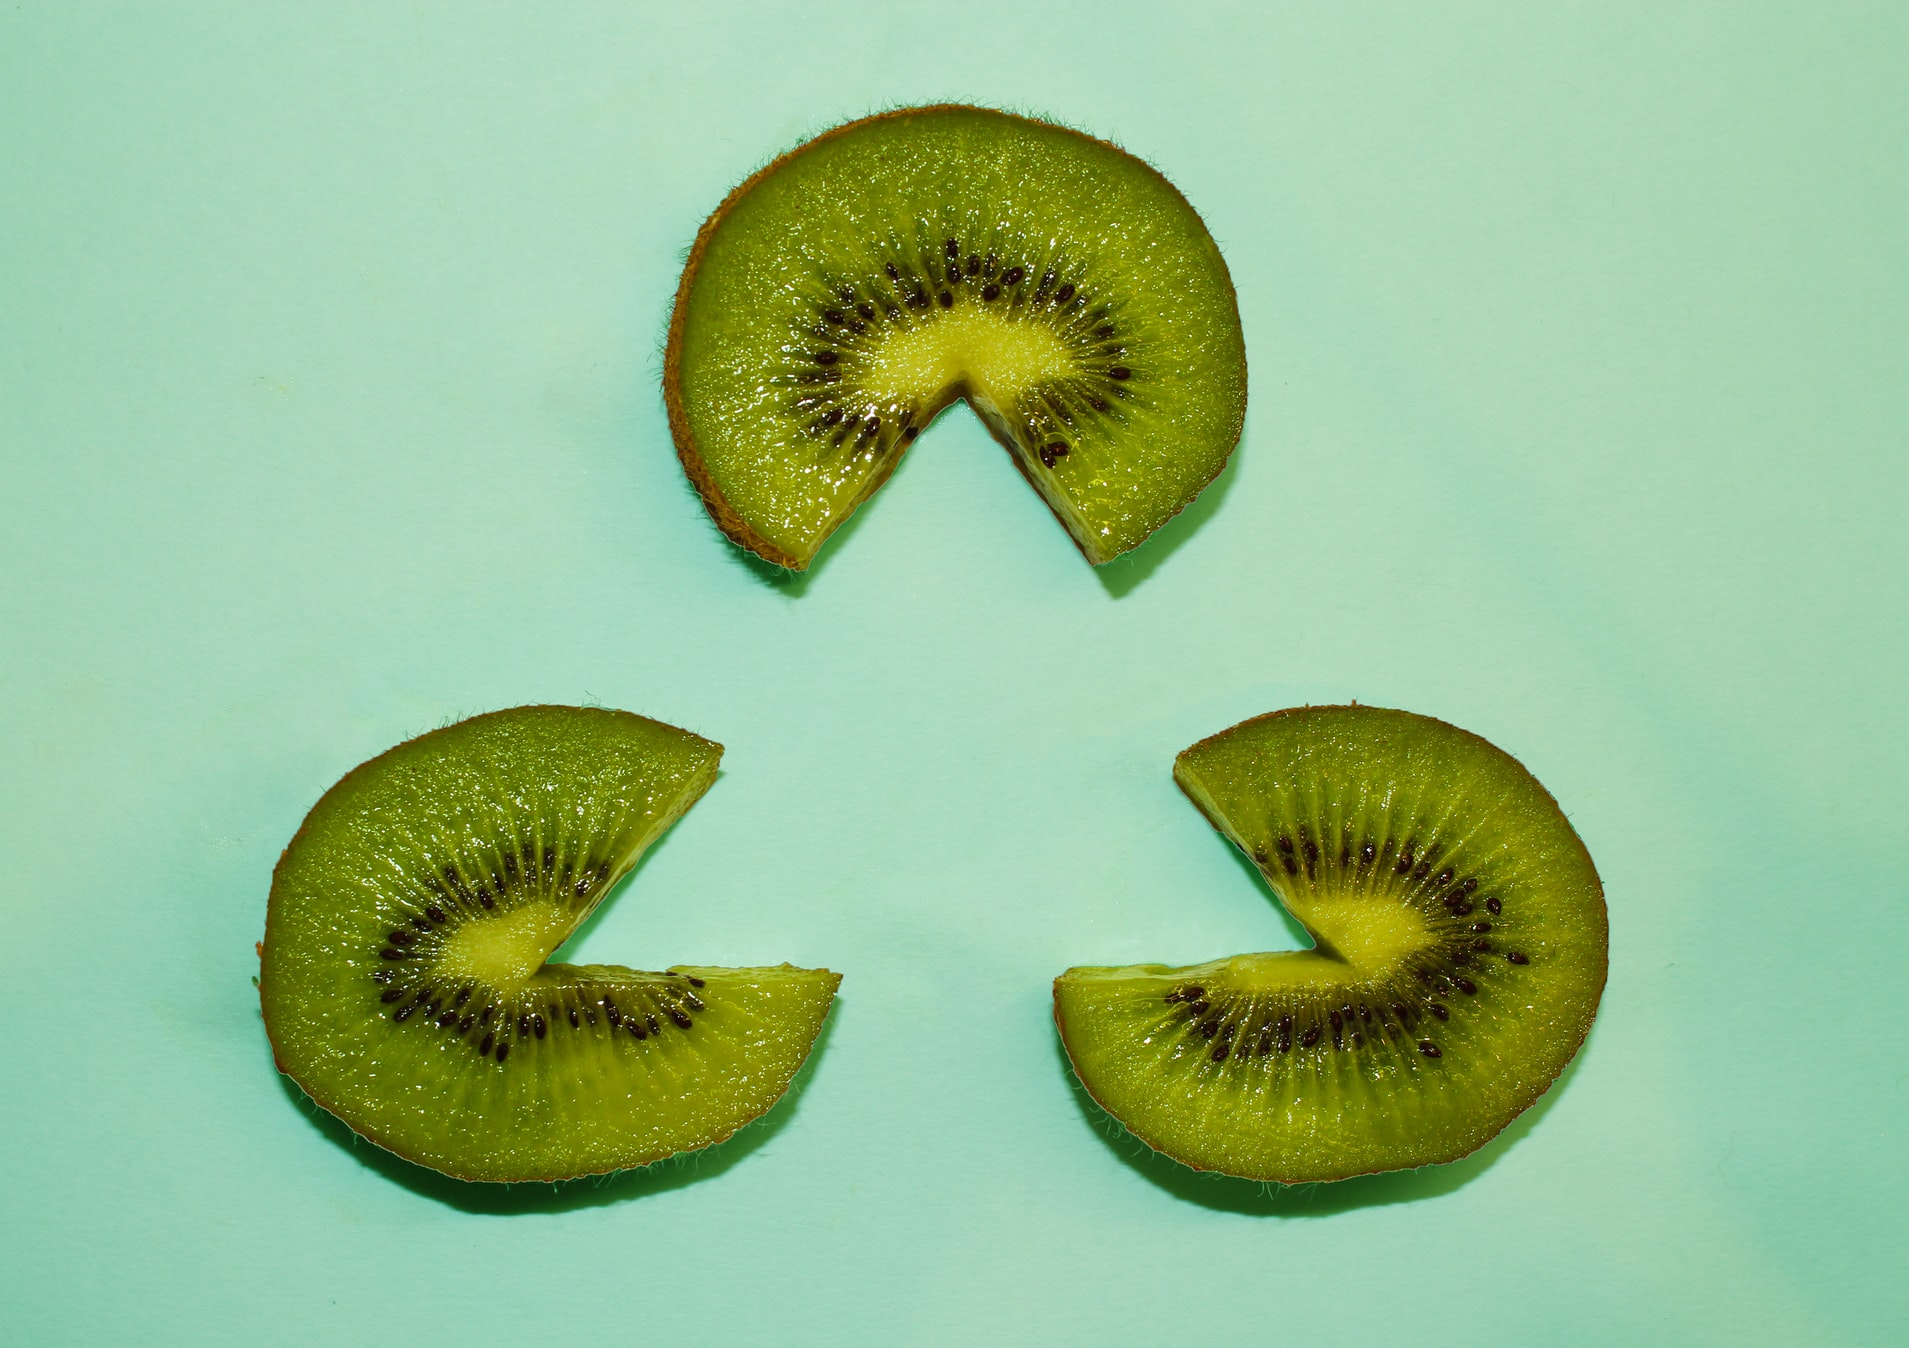 dried kiwis and constipation